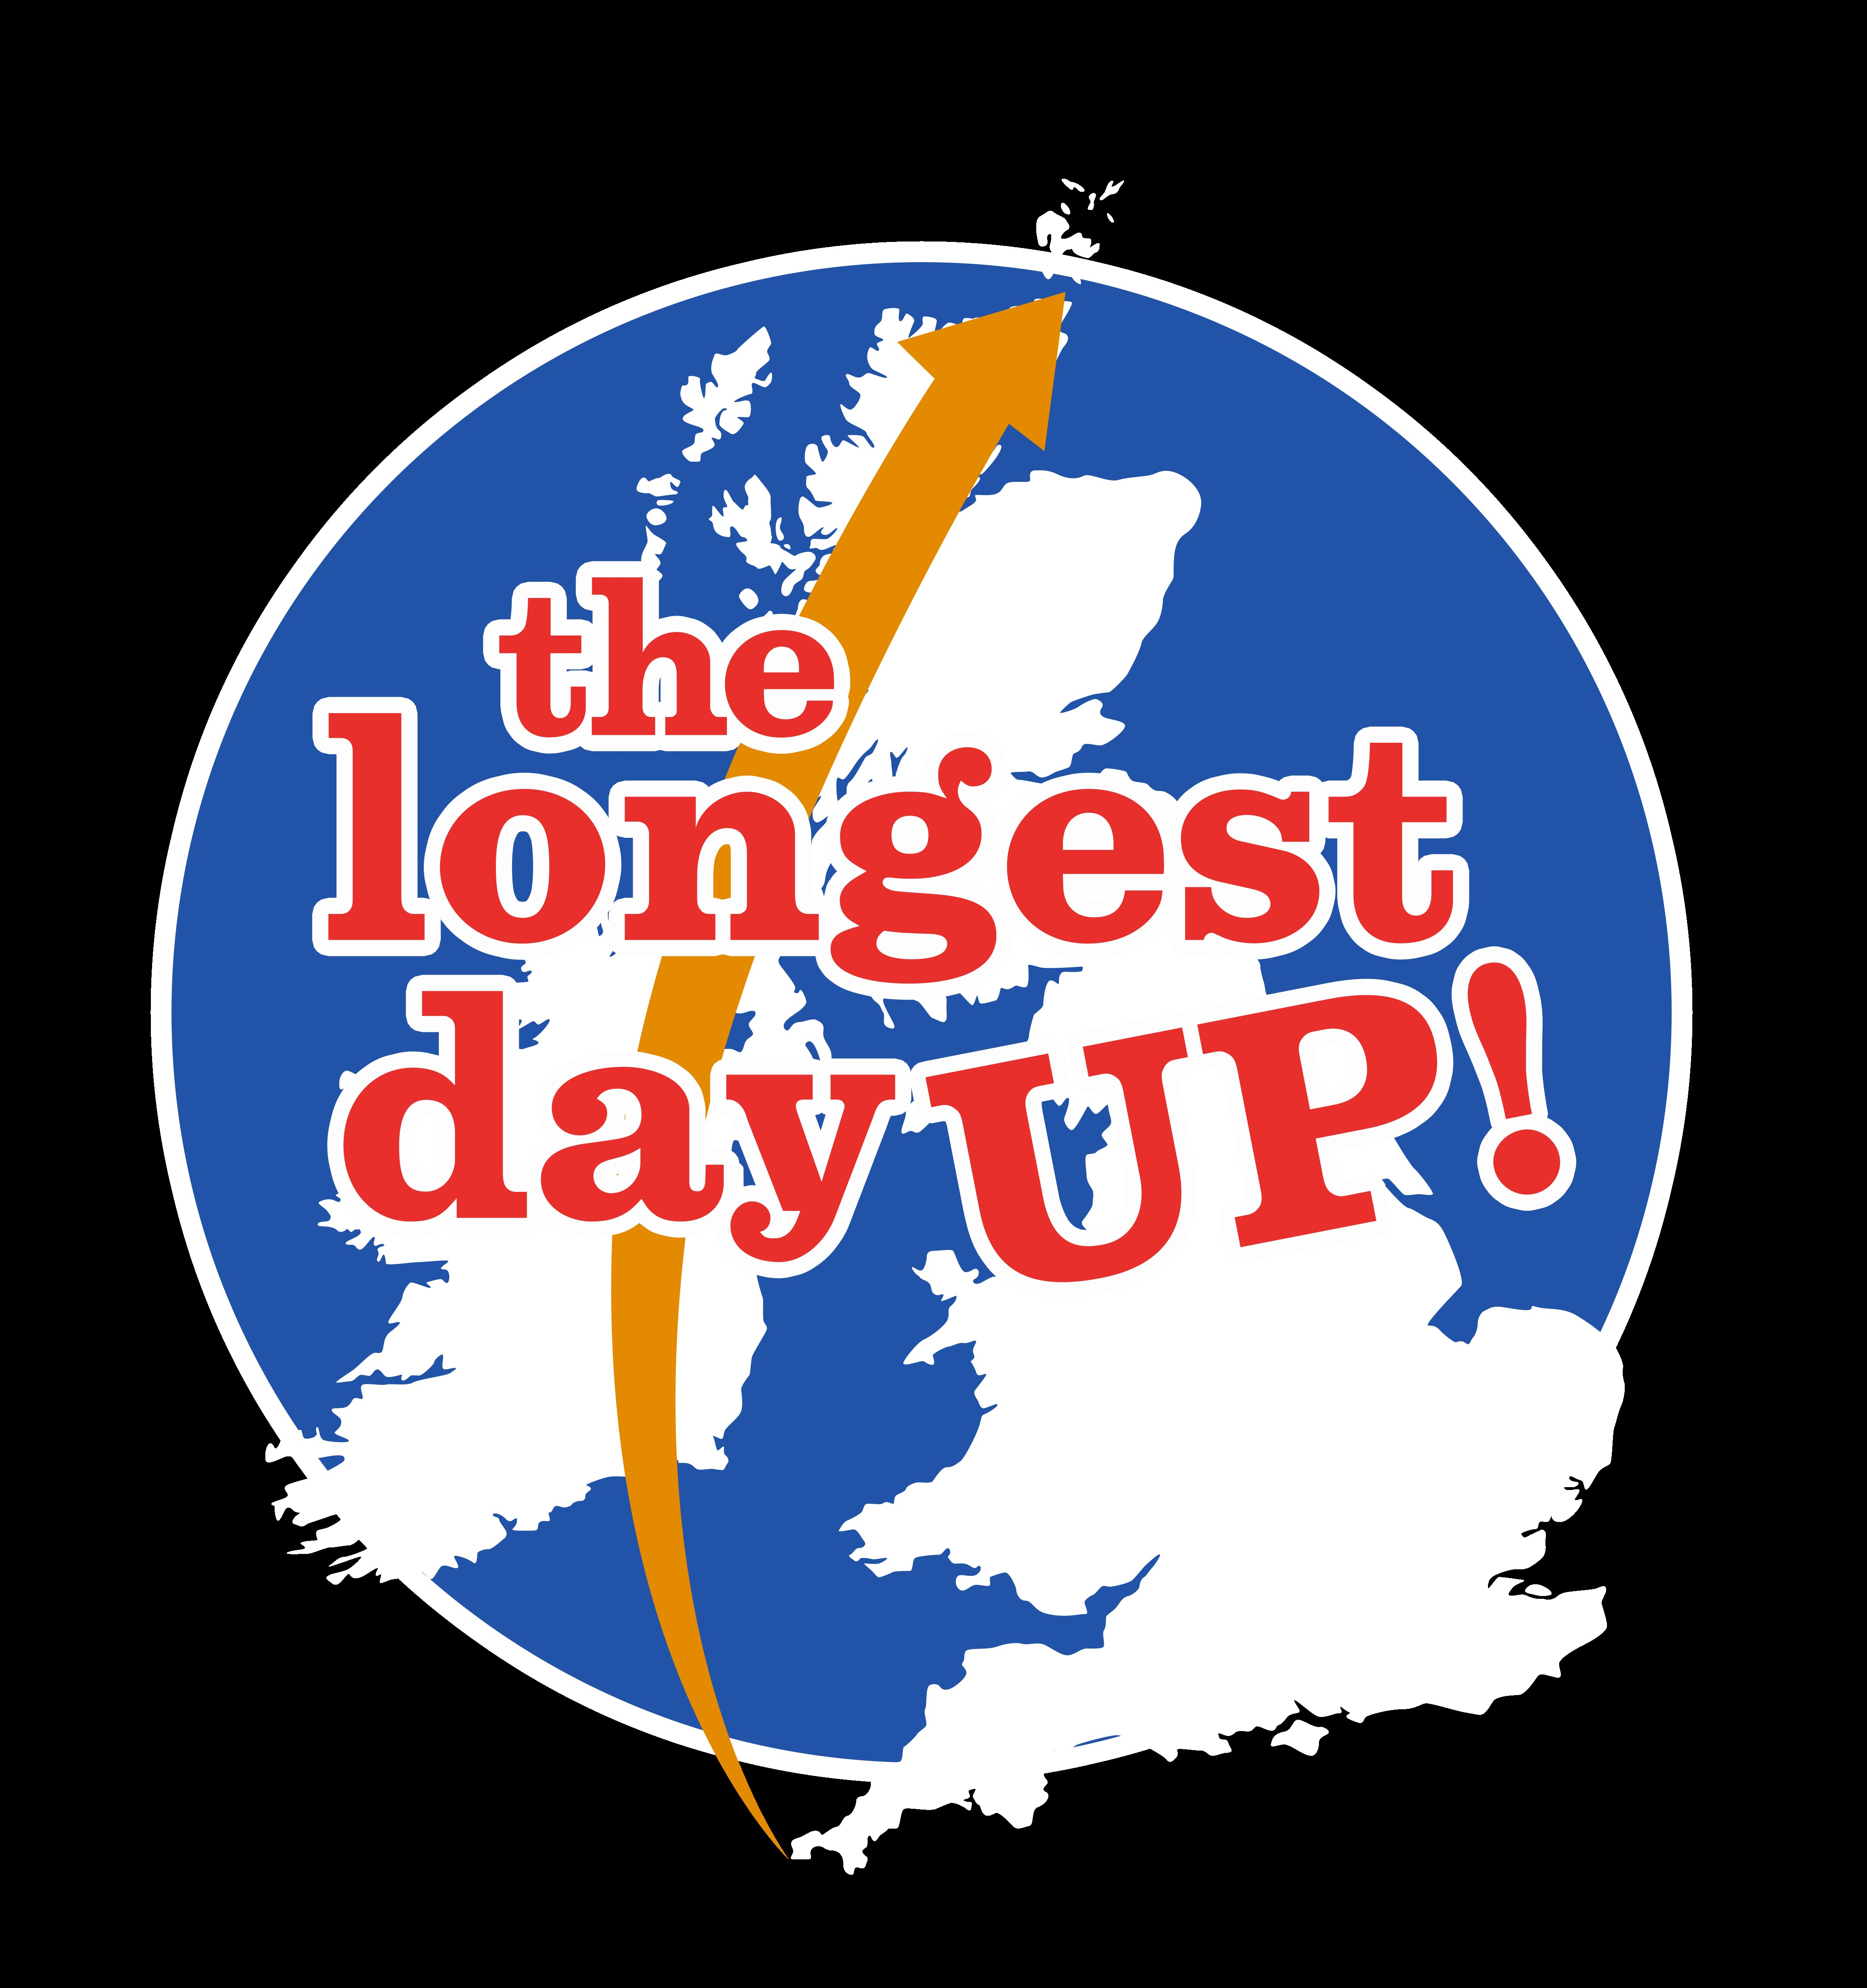 The Longest Day Up